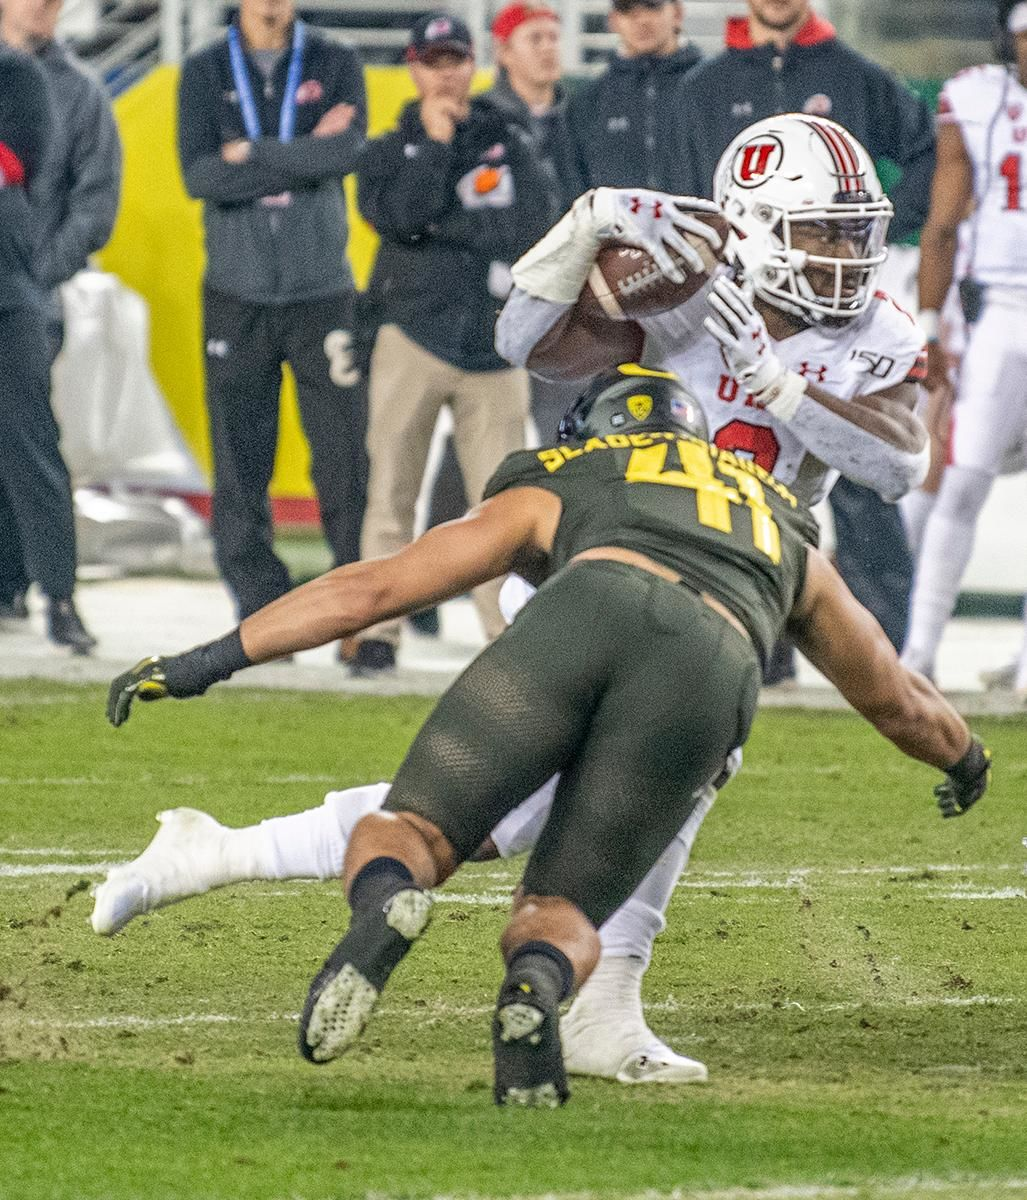 Oregon's middle linebacker Isaac Slade-Matautia, #41, wraps up on Utah's running back Zack Moss, #2, after a short gain.  The University of Oregon Ducks defeated the University of Utah Utes 37-15 for the Pac 12 Championship Friday night at Levi's Stadium. Oregon's running back CJ Verdell, #7, rushed for 203 all-purpose yard along with three touchdowns for the night. Verdell was named the games M-V-P for his performace. Oregon's safey Brady Breeze, #25, contributed 9 tackles and one interception. Oregon's defensive end Kayvon Thibodeaux, #5, sacked Utah's quarterback Tyler Huntly, #1, for a total of three times. Oregon's quarterback Justin Herbert, #10, passed for 193 yards with one touchdown. The Oregon Ducks will represent the Pac 12 for the upcoming Rose Bowl game in the new year. Photo by Jeffrey Price